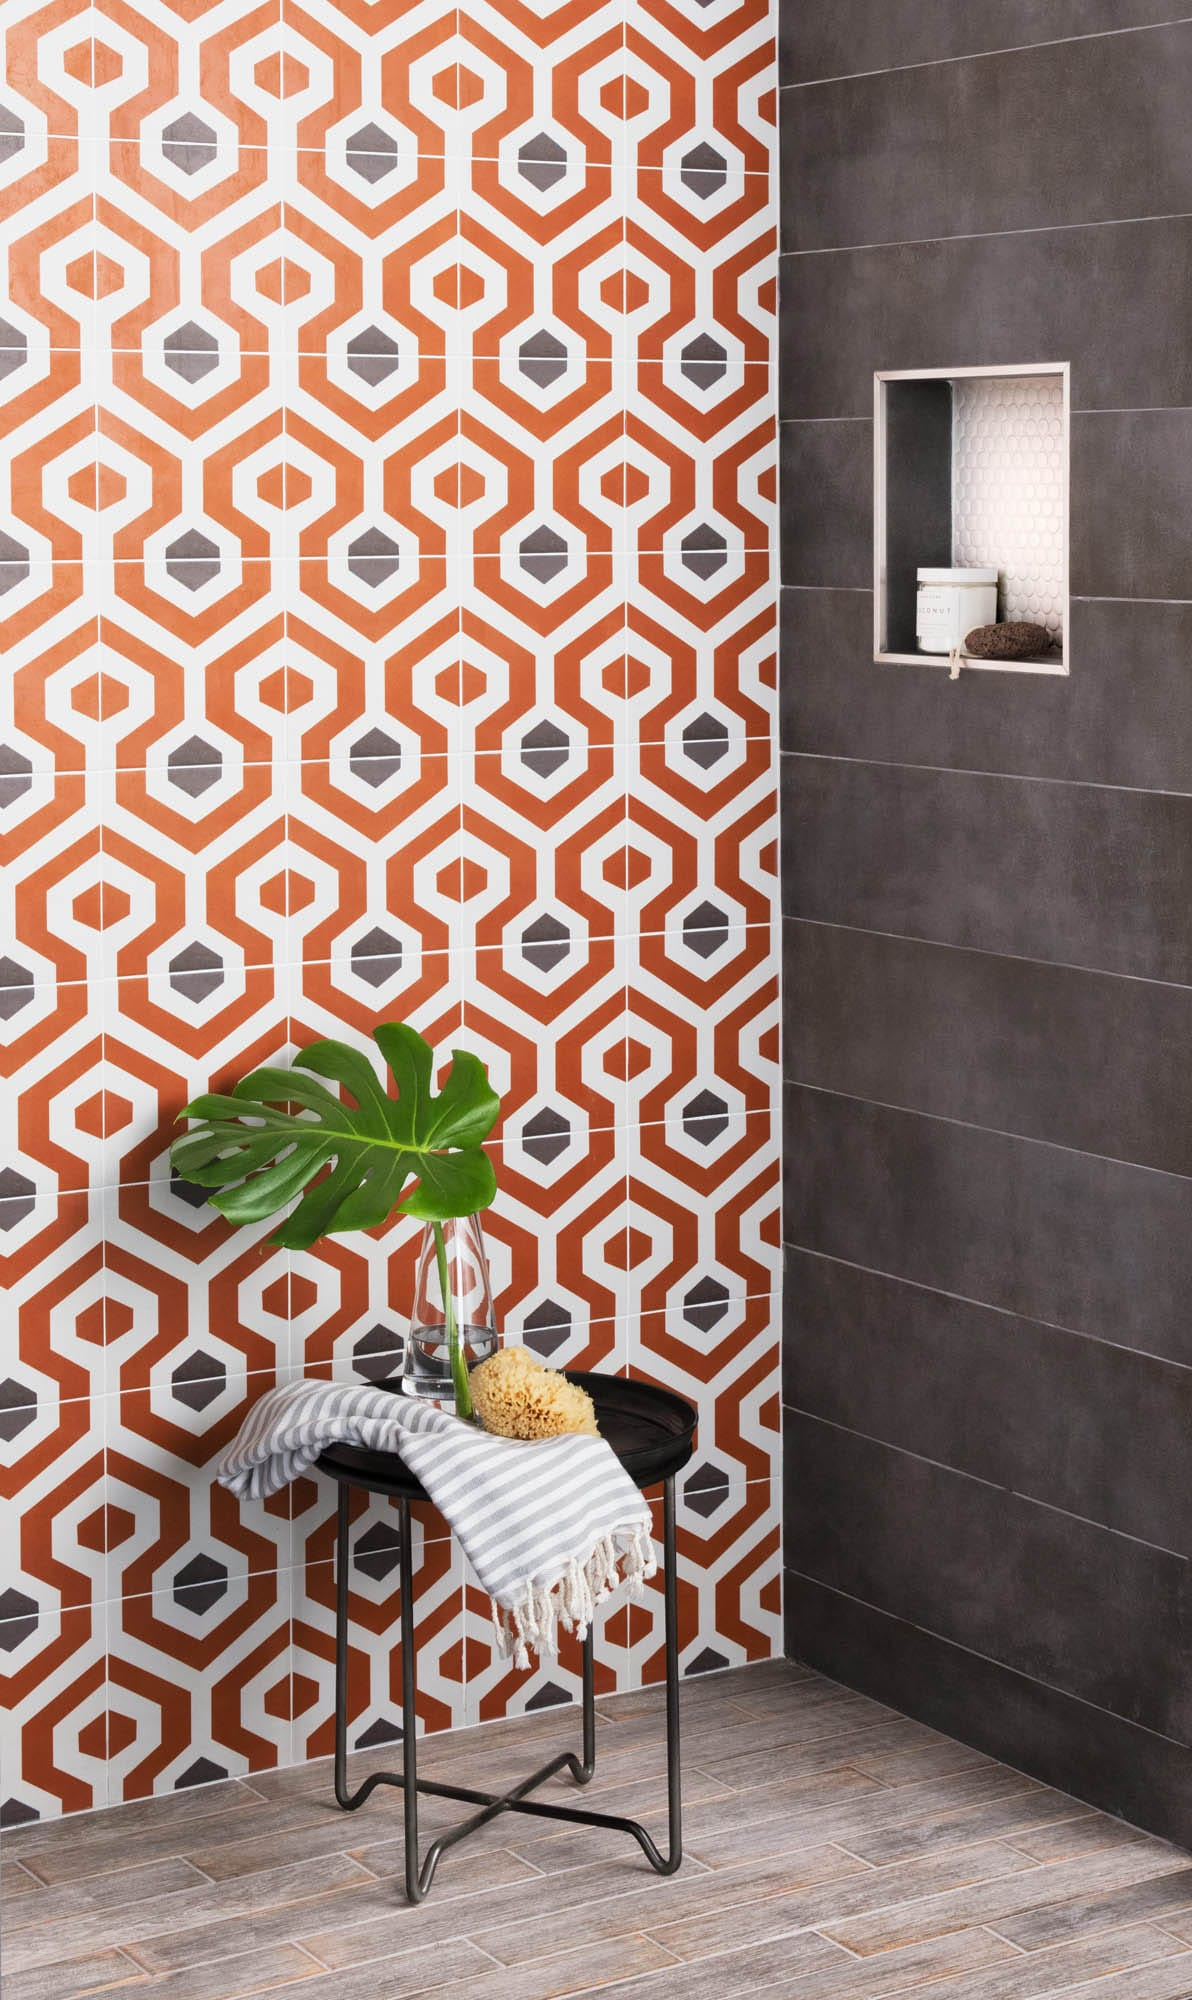 Bold patterned show tile